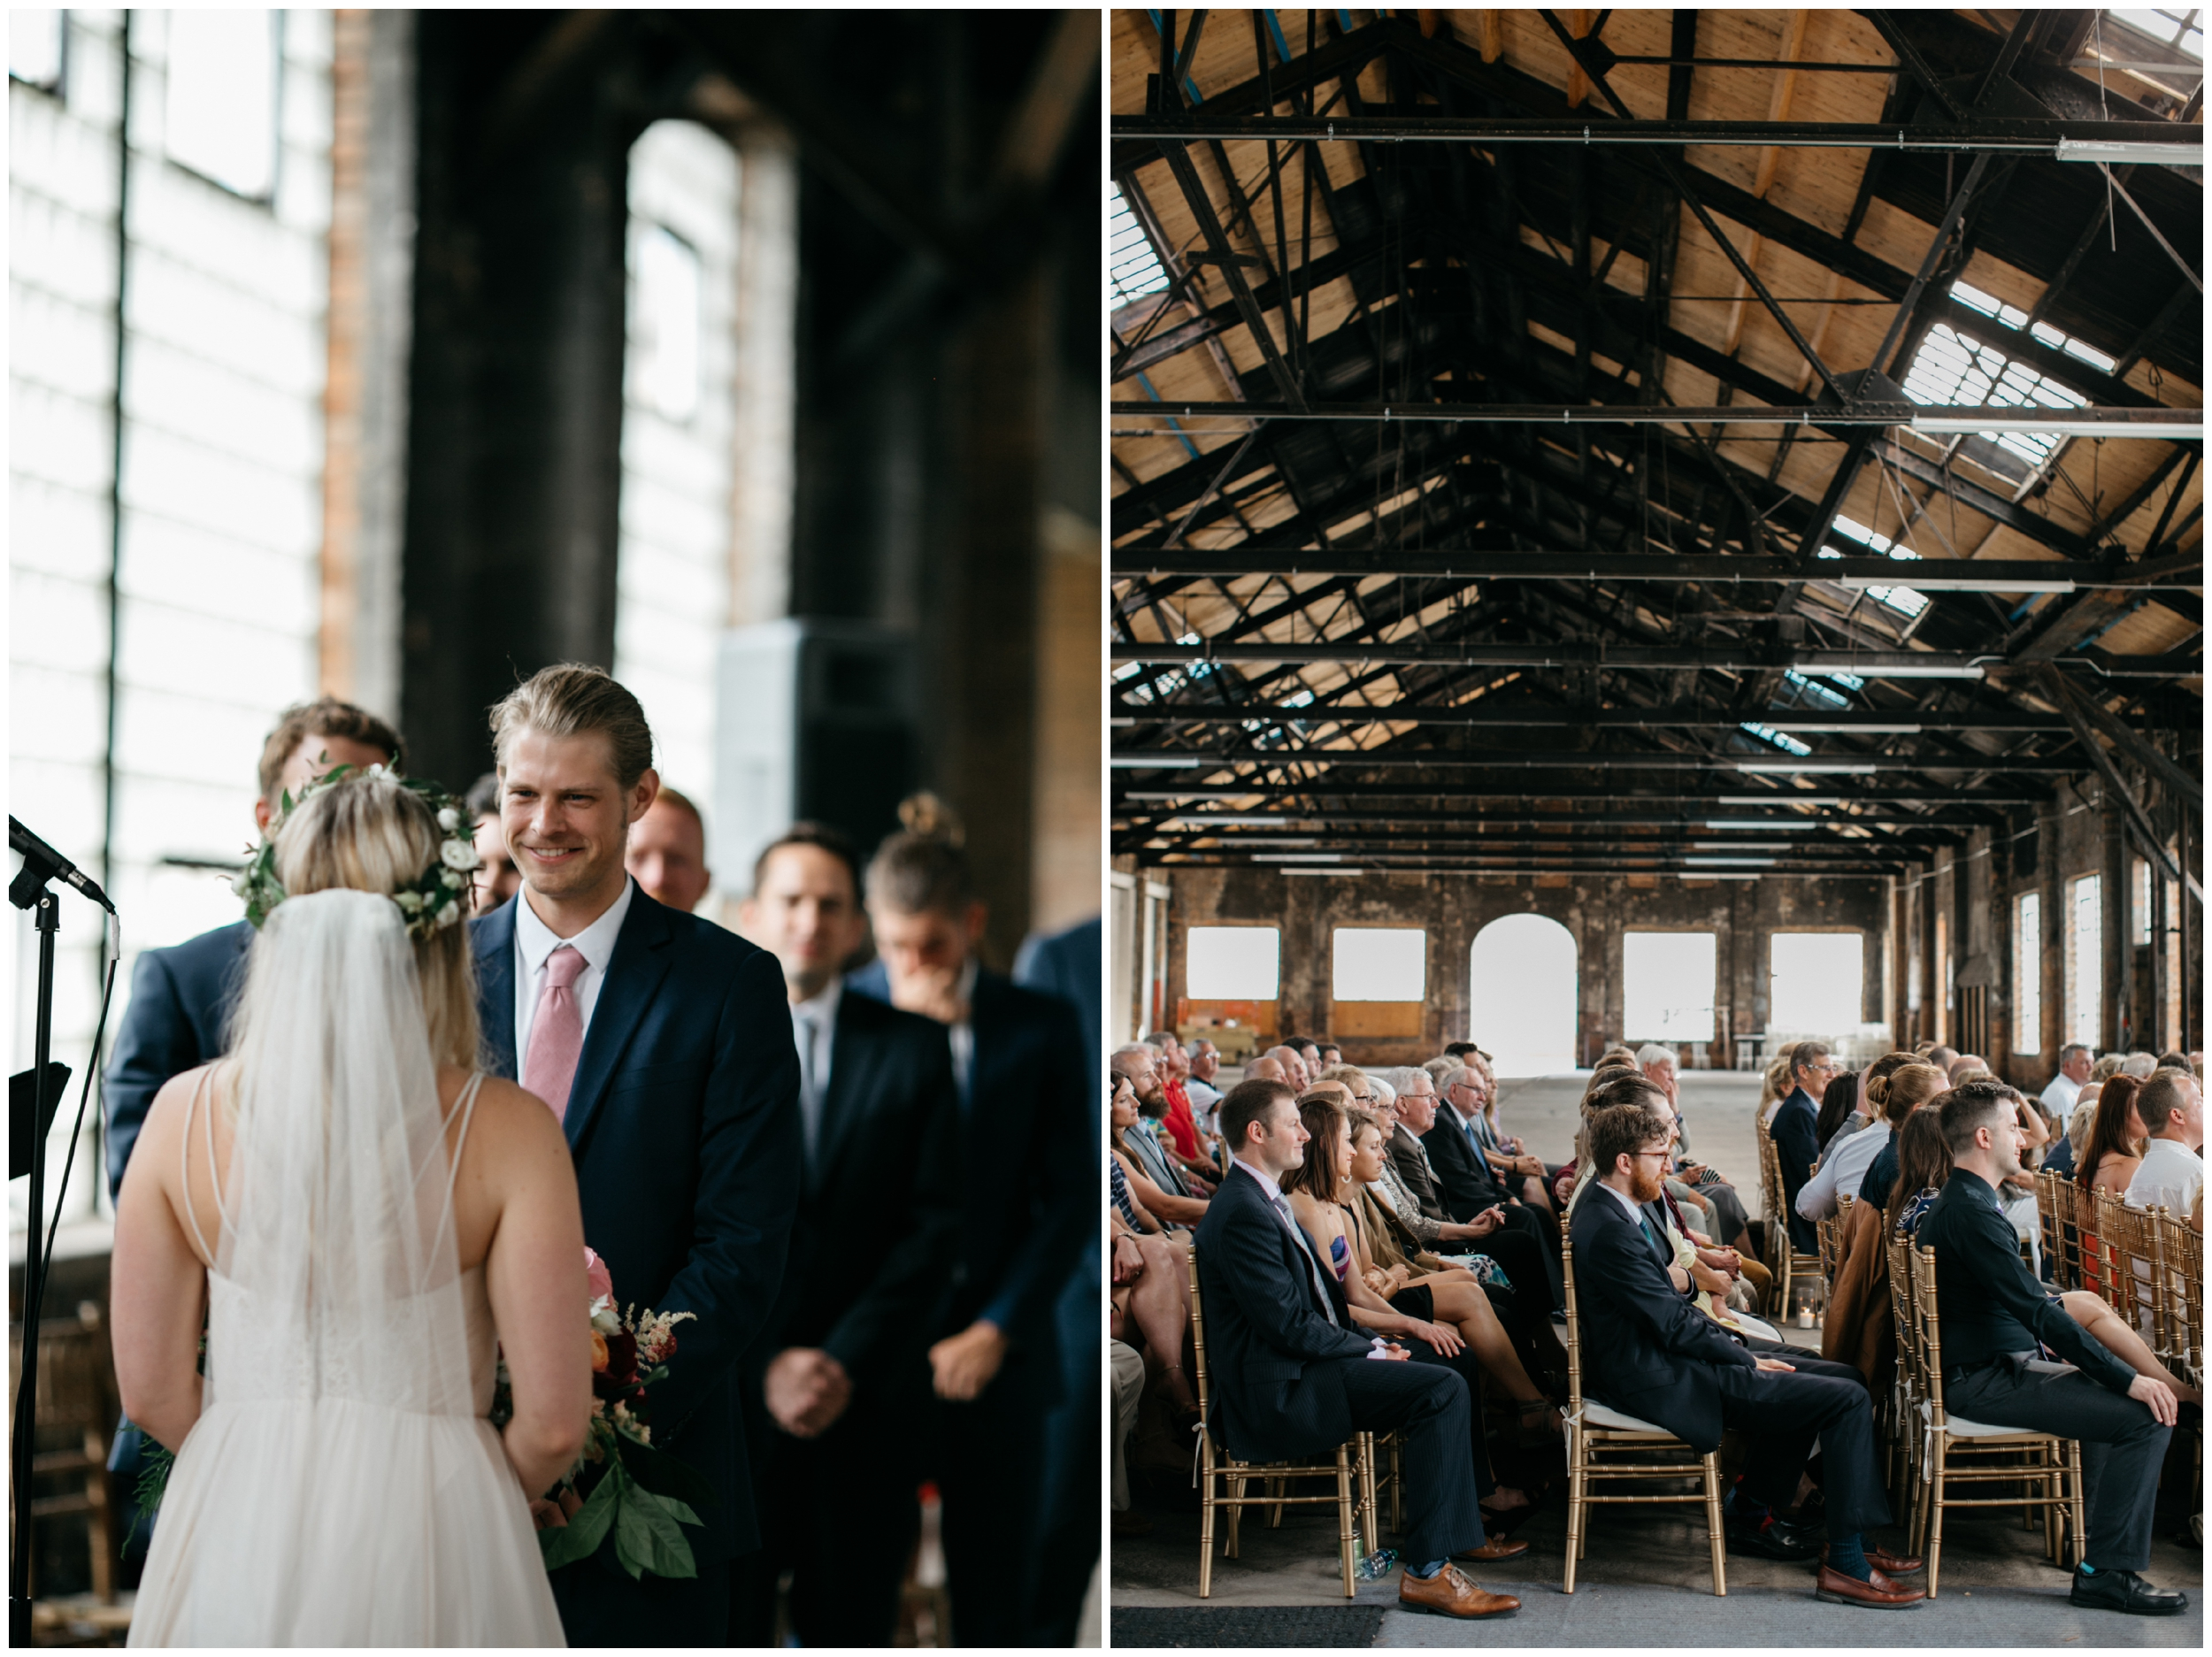 Industrial wedding ceremony at the NP Event Space in Brainerd Minnesota